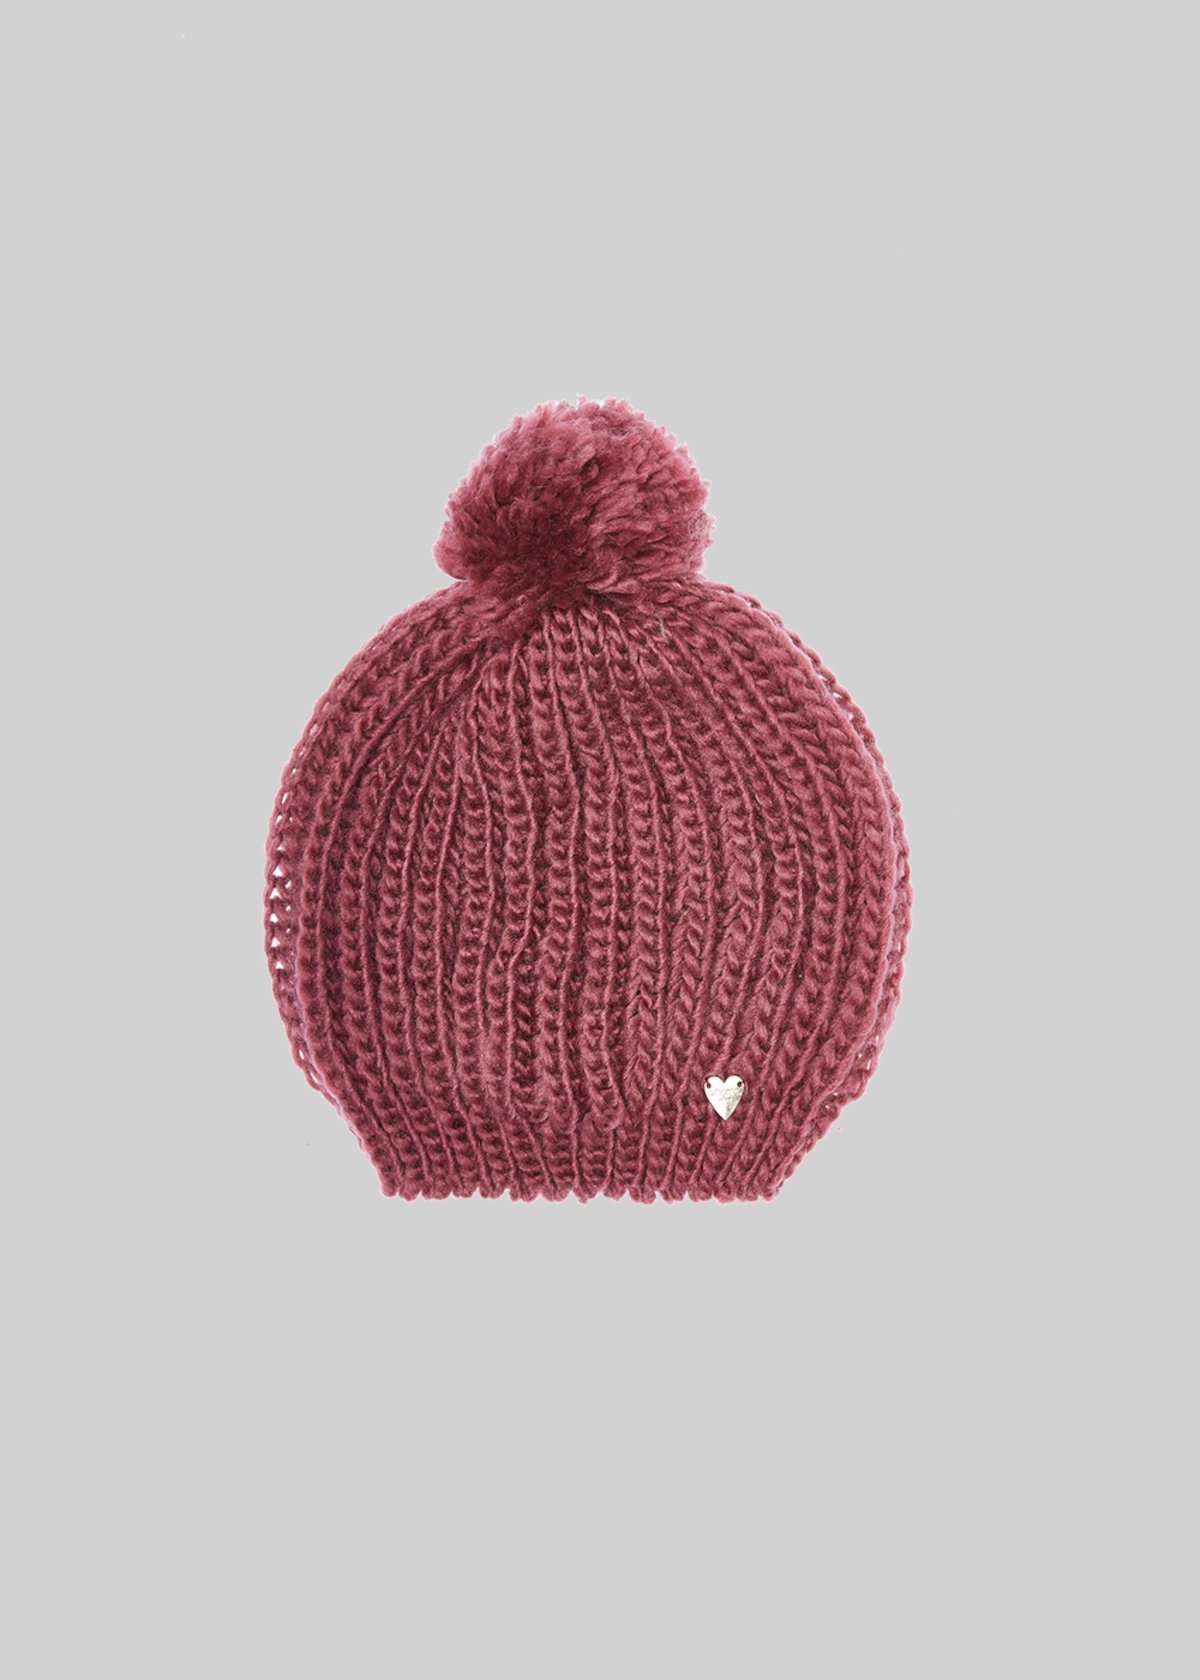 Candi knitted hat with pompom